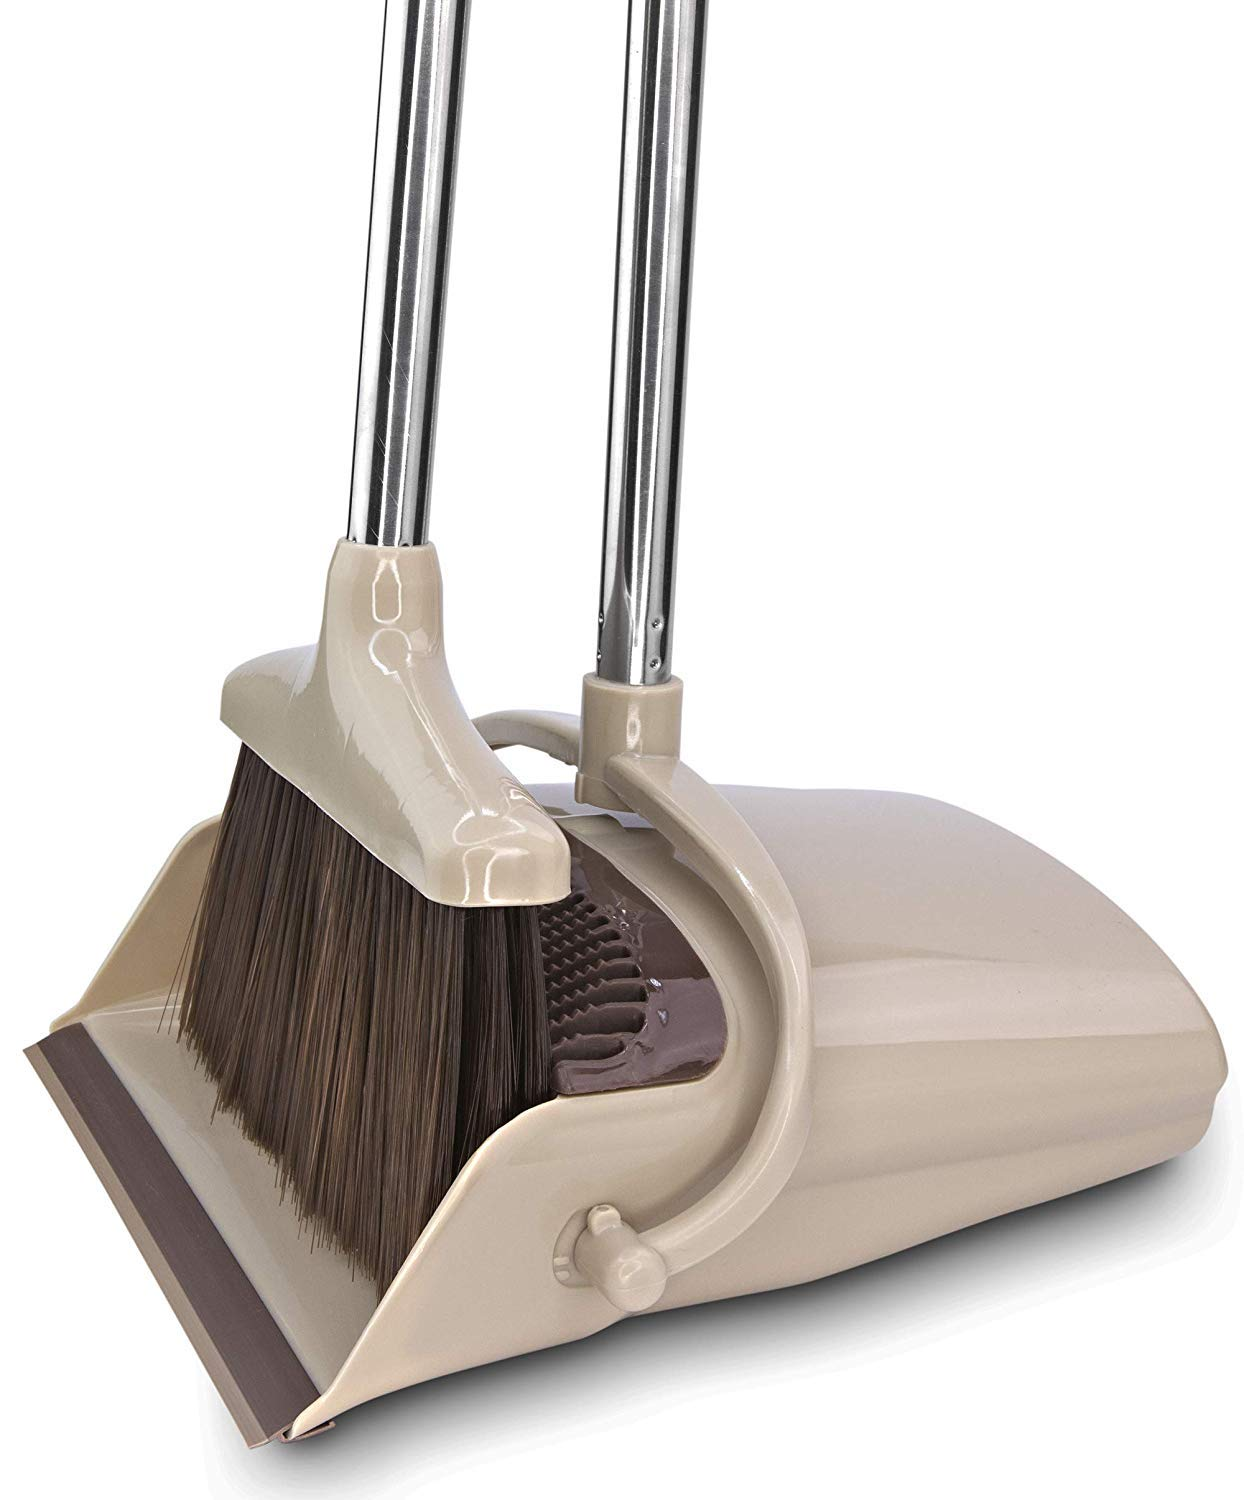 Broom and Dustpan Set [2019 Version] - Stand Up Brush and Dust Pan Combo  for Upright Cleaning - Remove Hair with Built-in Wisp Scraper - Kitchen,